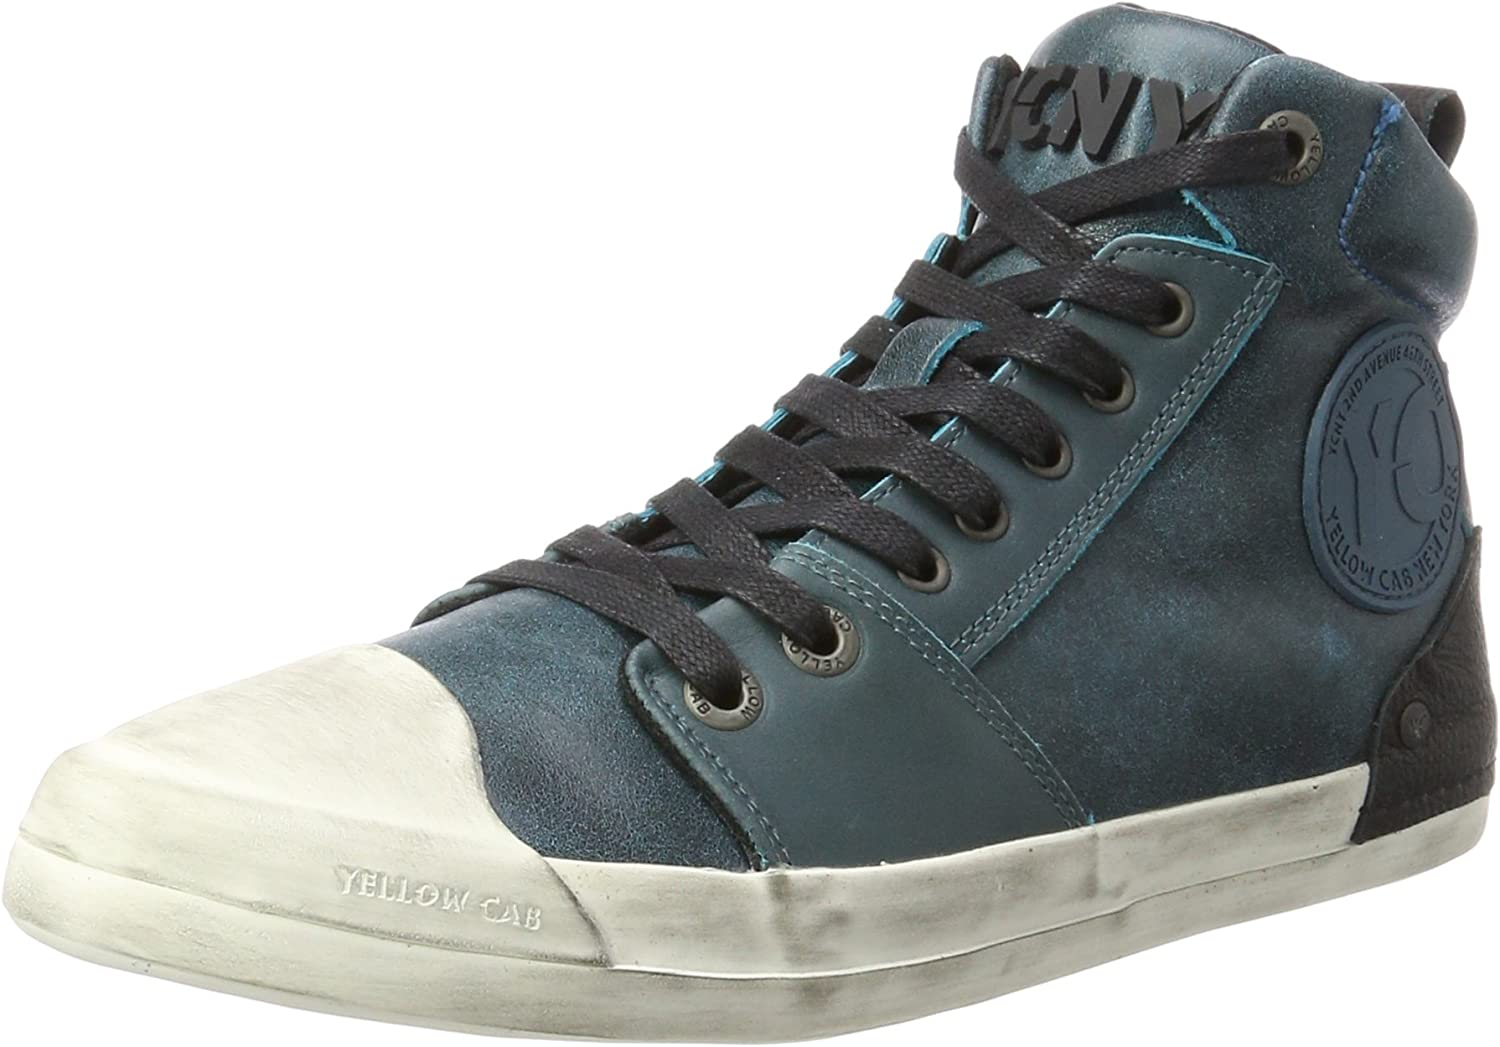 gul Cab Mans Grind M Hi -Top Trainers Trainers Trainers  till salu